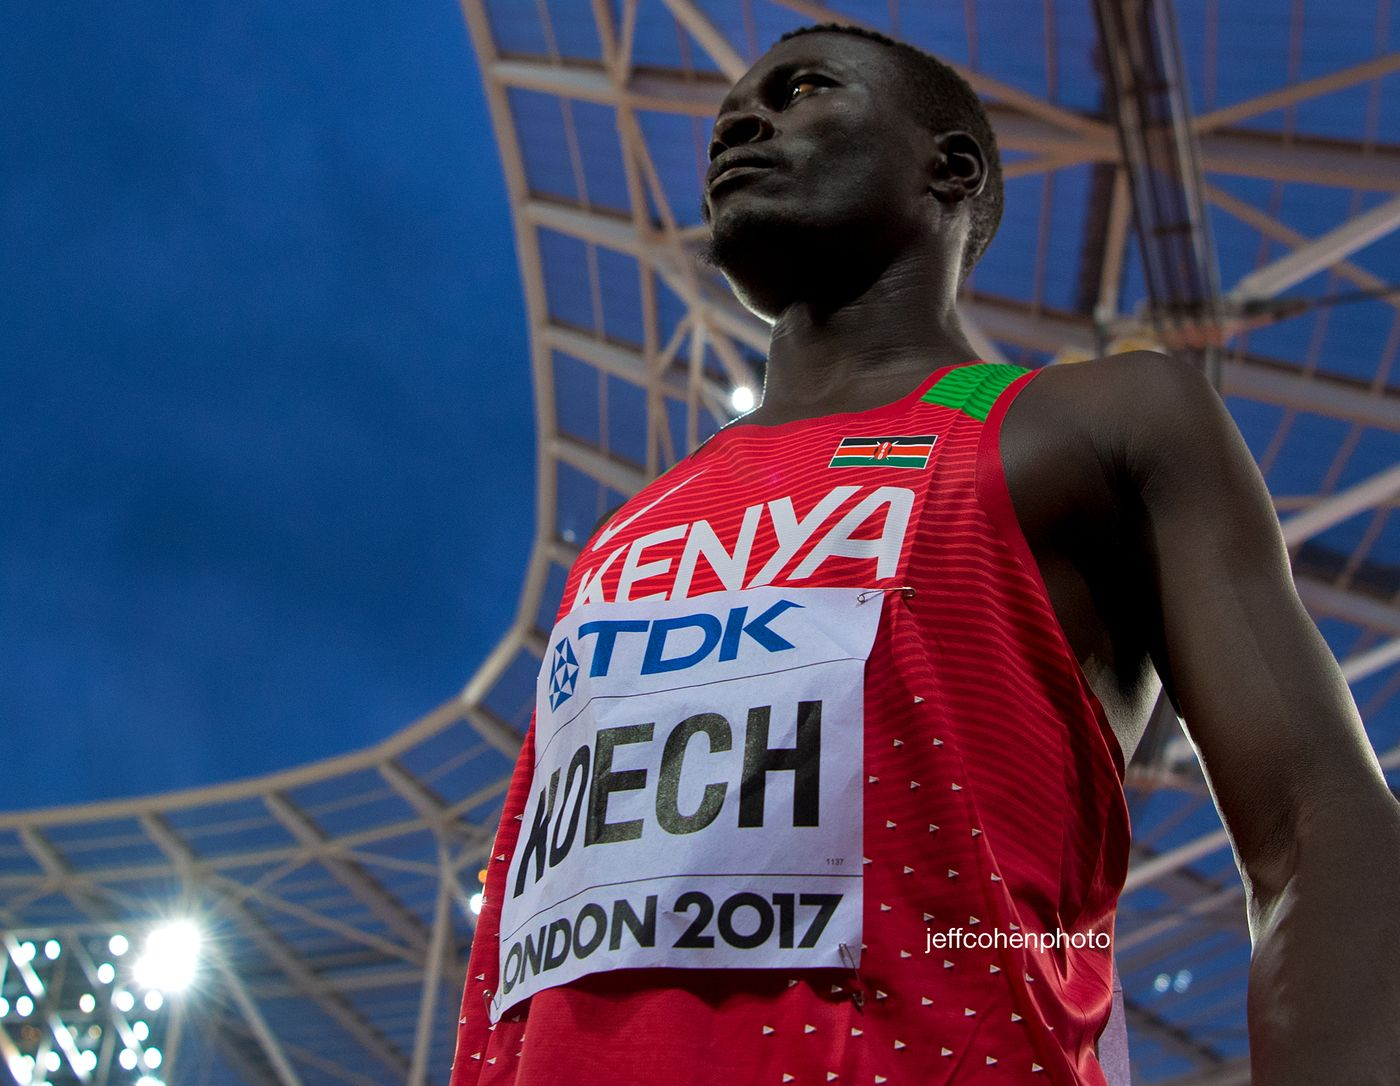 2017-IAAF-WC-London-night-4-haron-koech-400mh-kenya-4262-jeff-cohen-photo--web.jpg